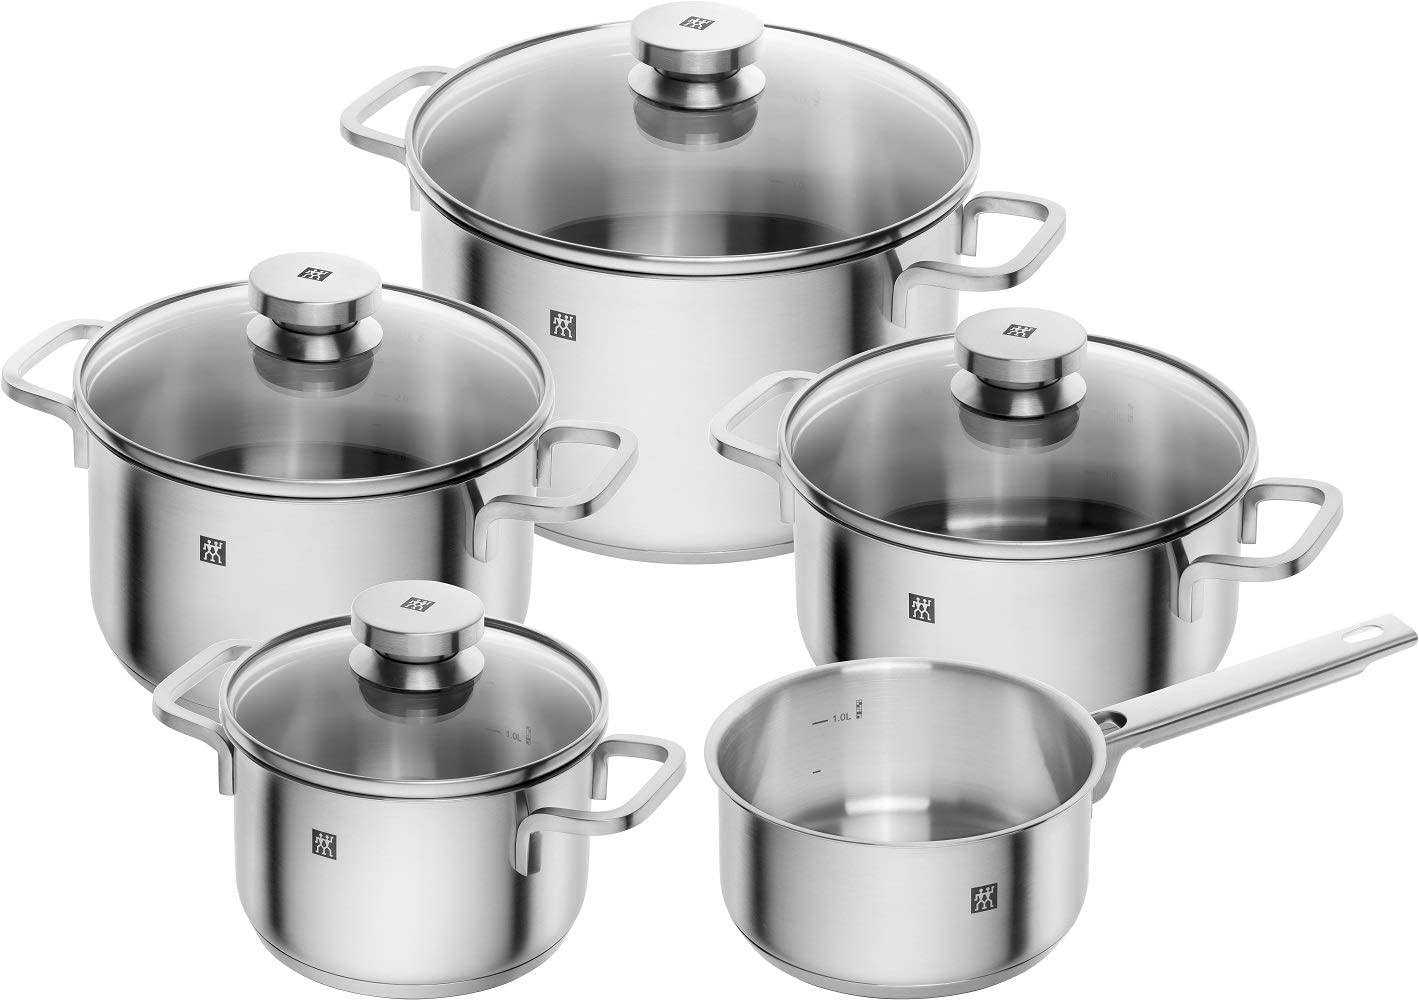 Zwilling Focus 66670-000-0 5-Piece Saucepan Set Glass Lids Suitable for Induction Cookers Rust-Free 18/10 Stainless Steel